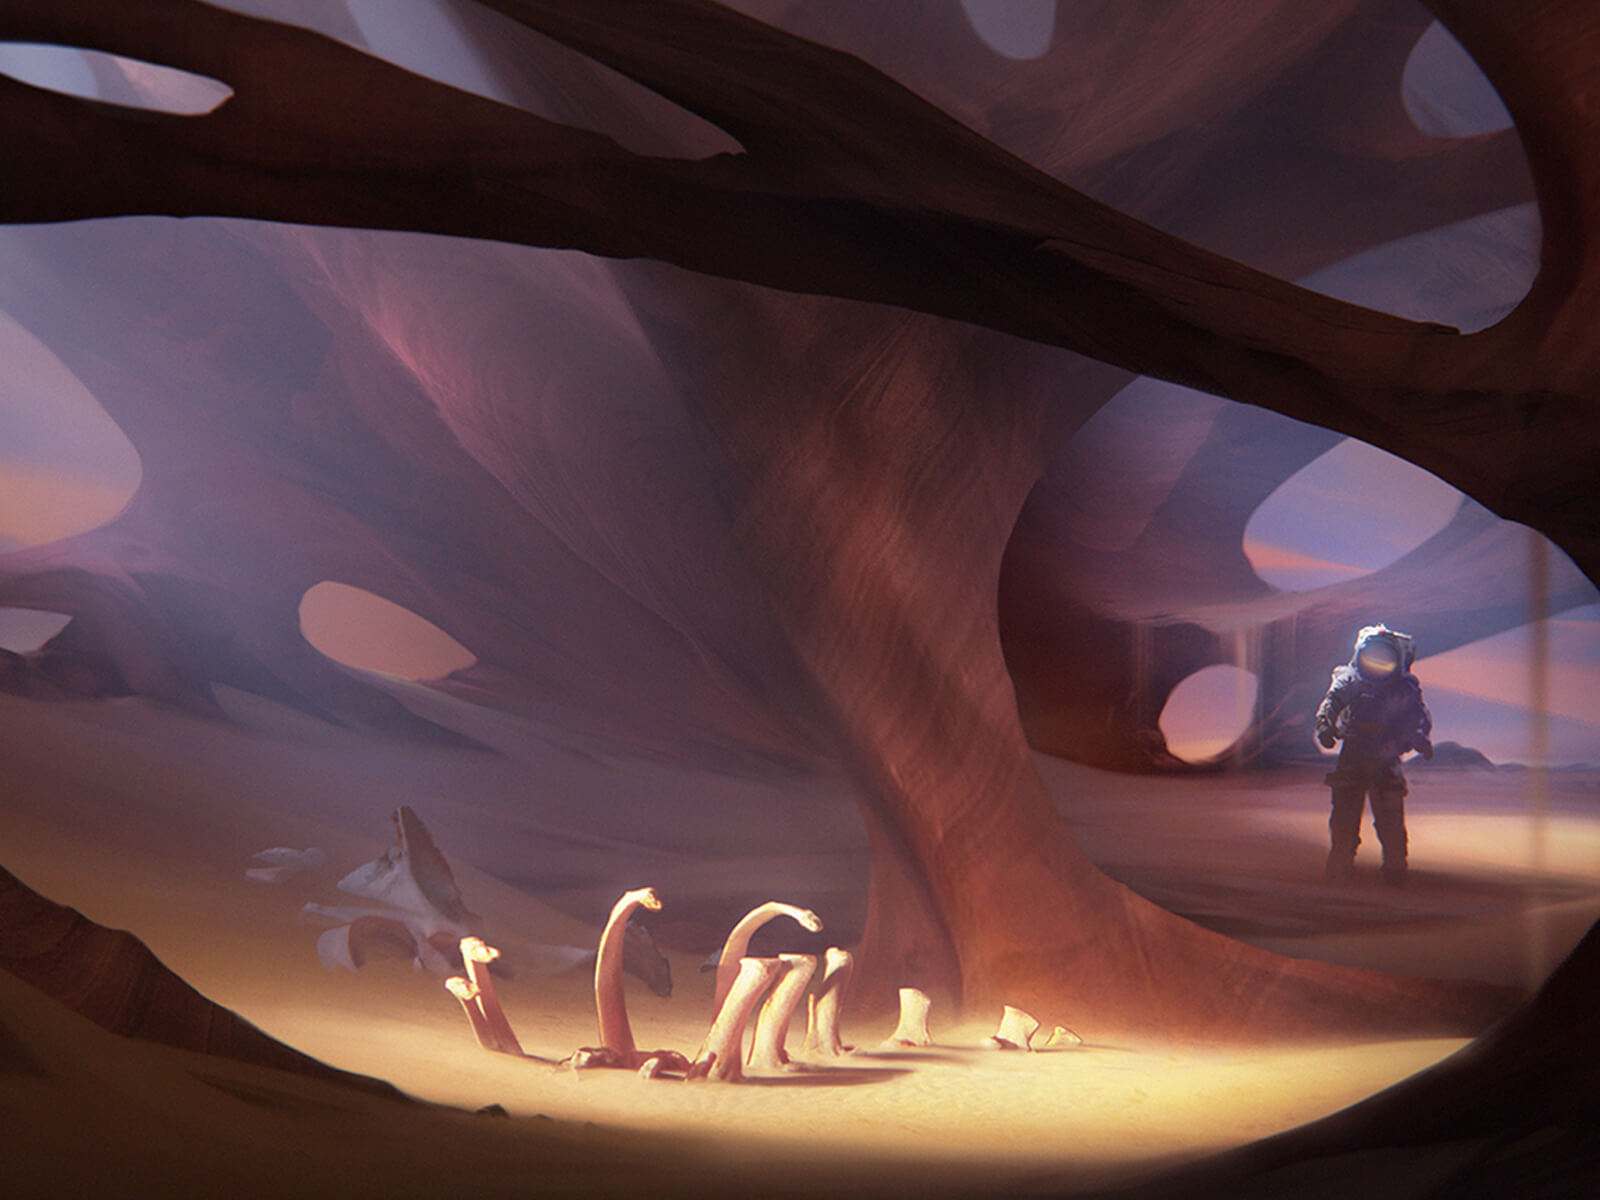 digital painting of an astronaut in a desert-like enivronment with curving rock formations, rendered in shades of purple